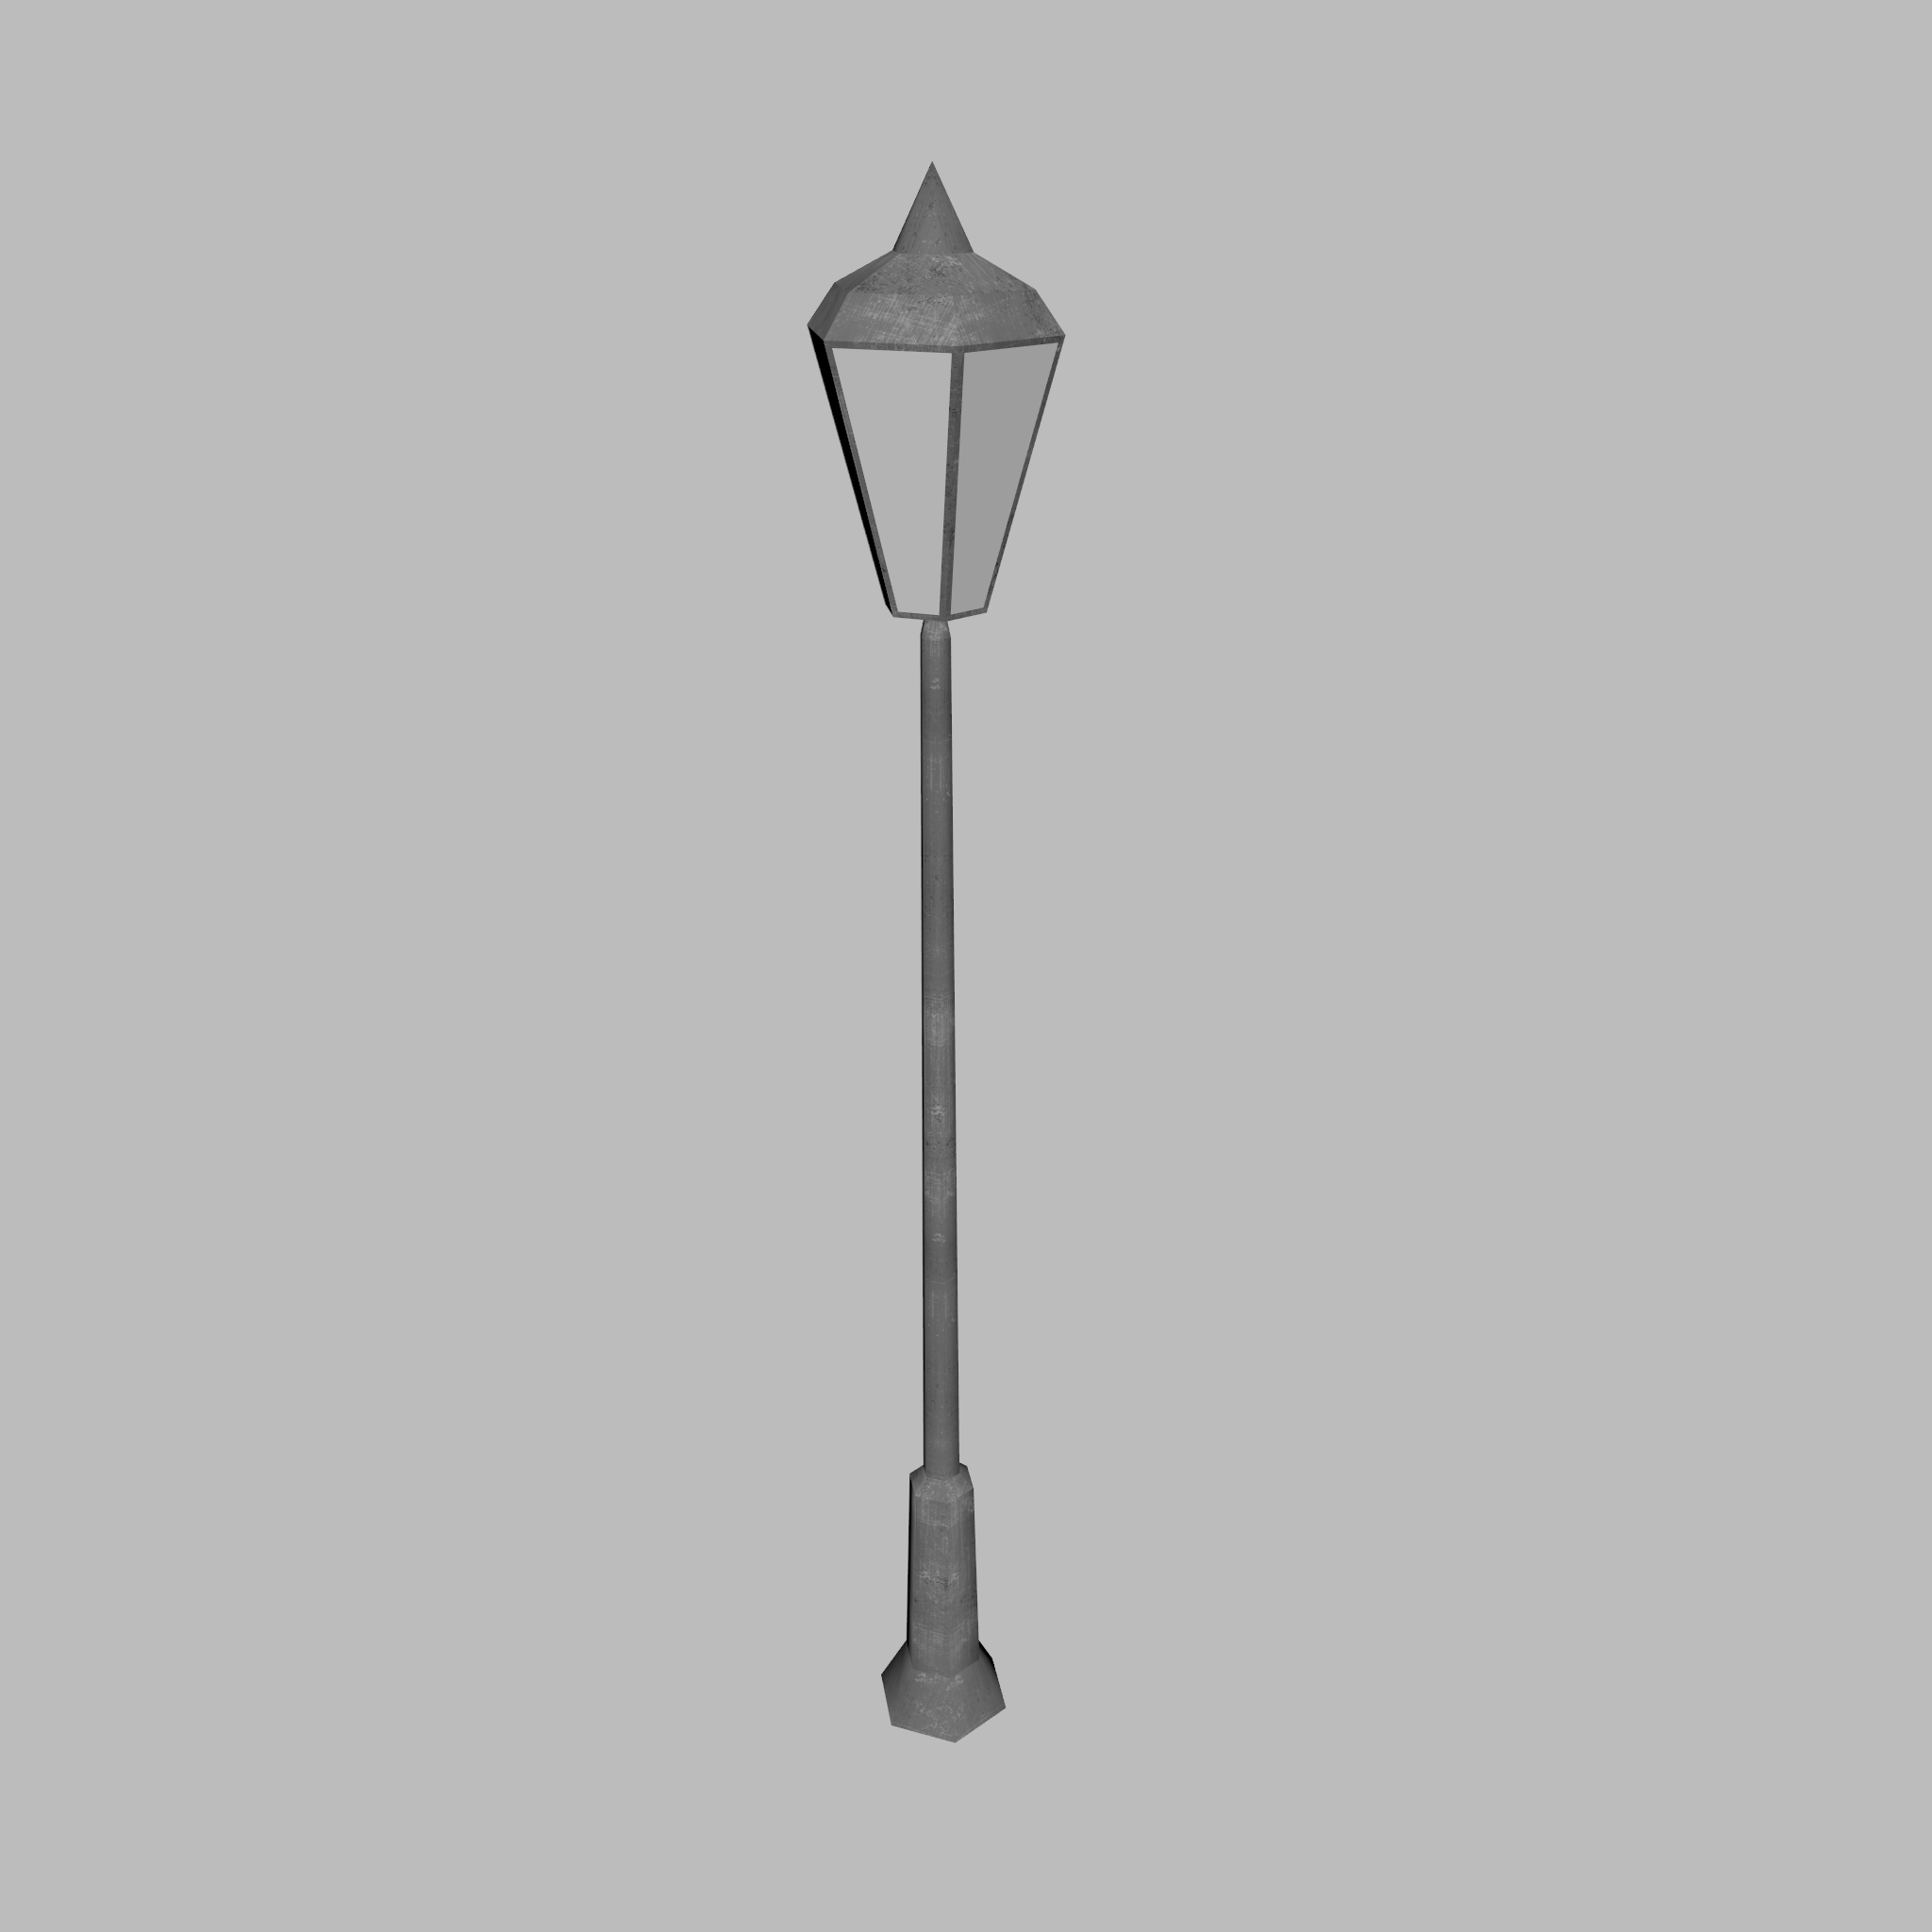 Low-Poly Lamppost 3D Model – Buy Low-Poly Lamppost 3D Model ...